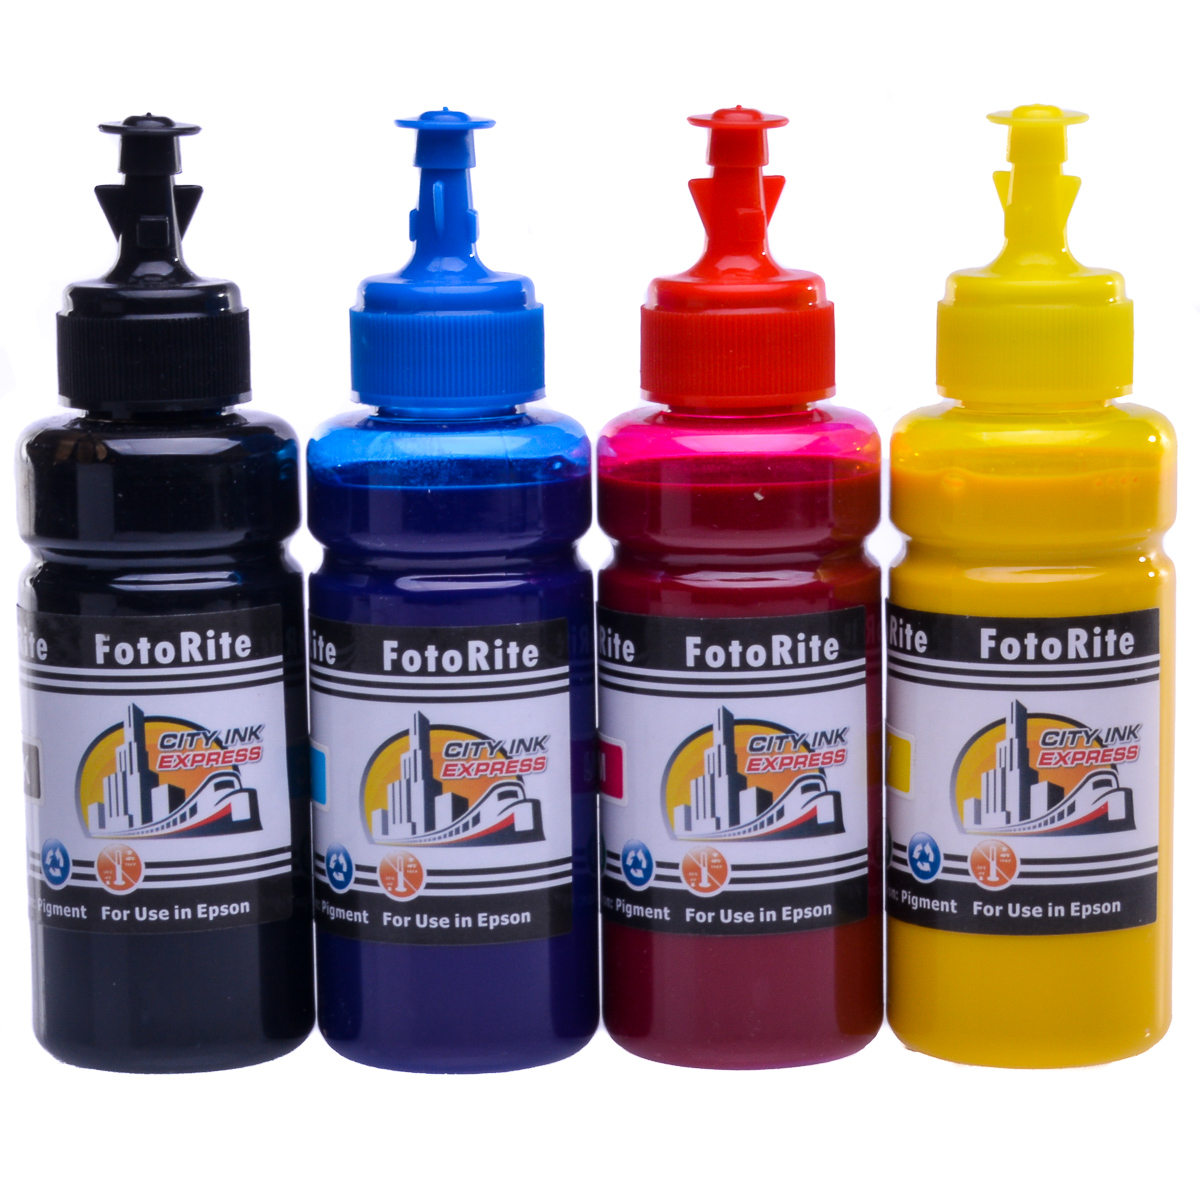 Cheap Multipack pigment ink refill replaces Epson WF-3720